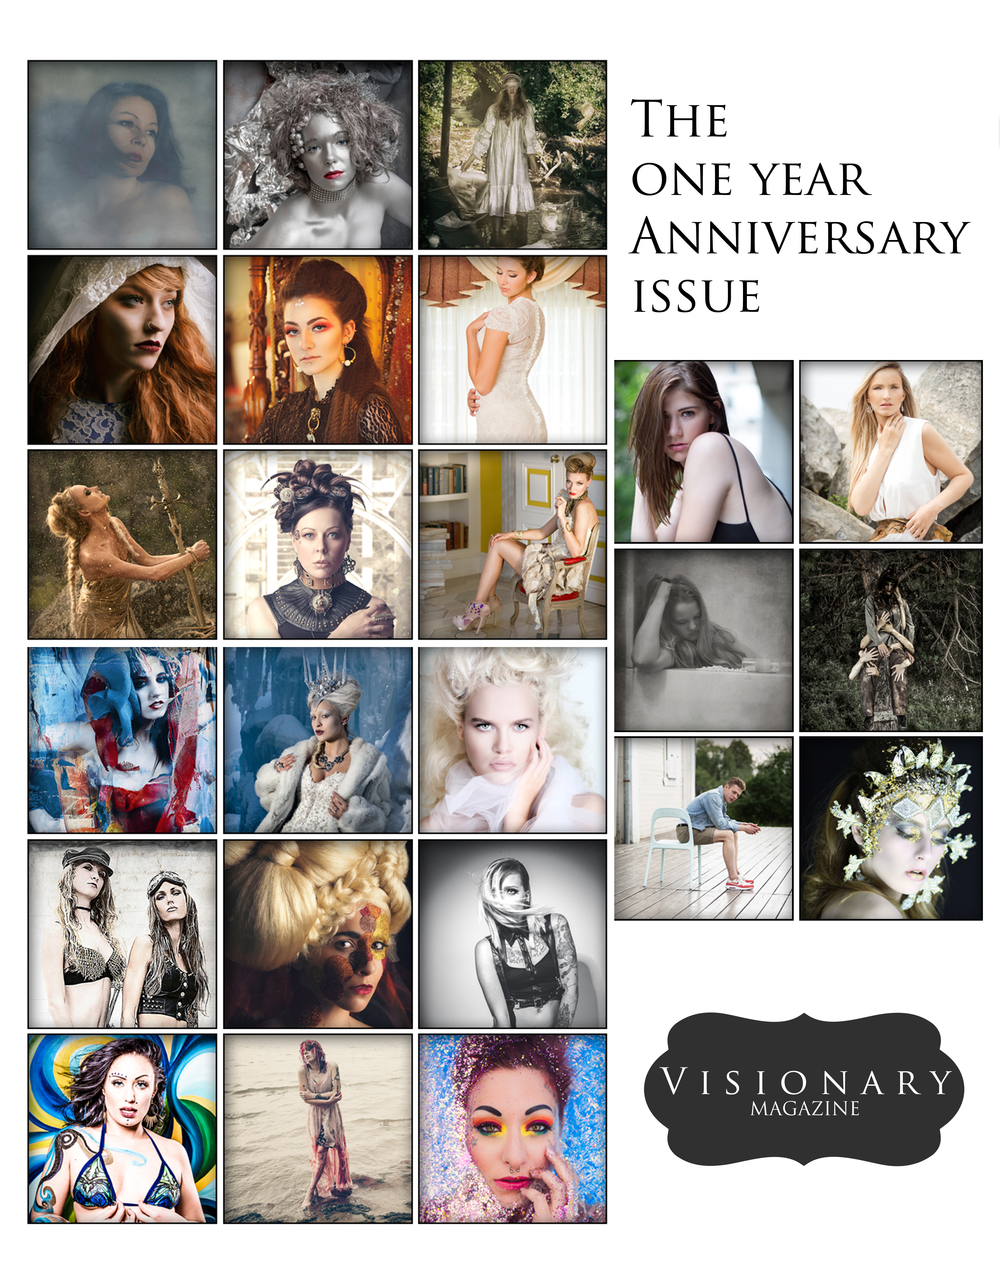 The Anniversary Issue - August / September 2016  * Featuring every artist that has been published in Visionary Magazine for the past year!